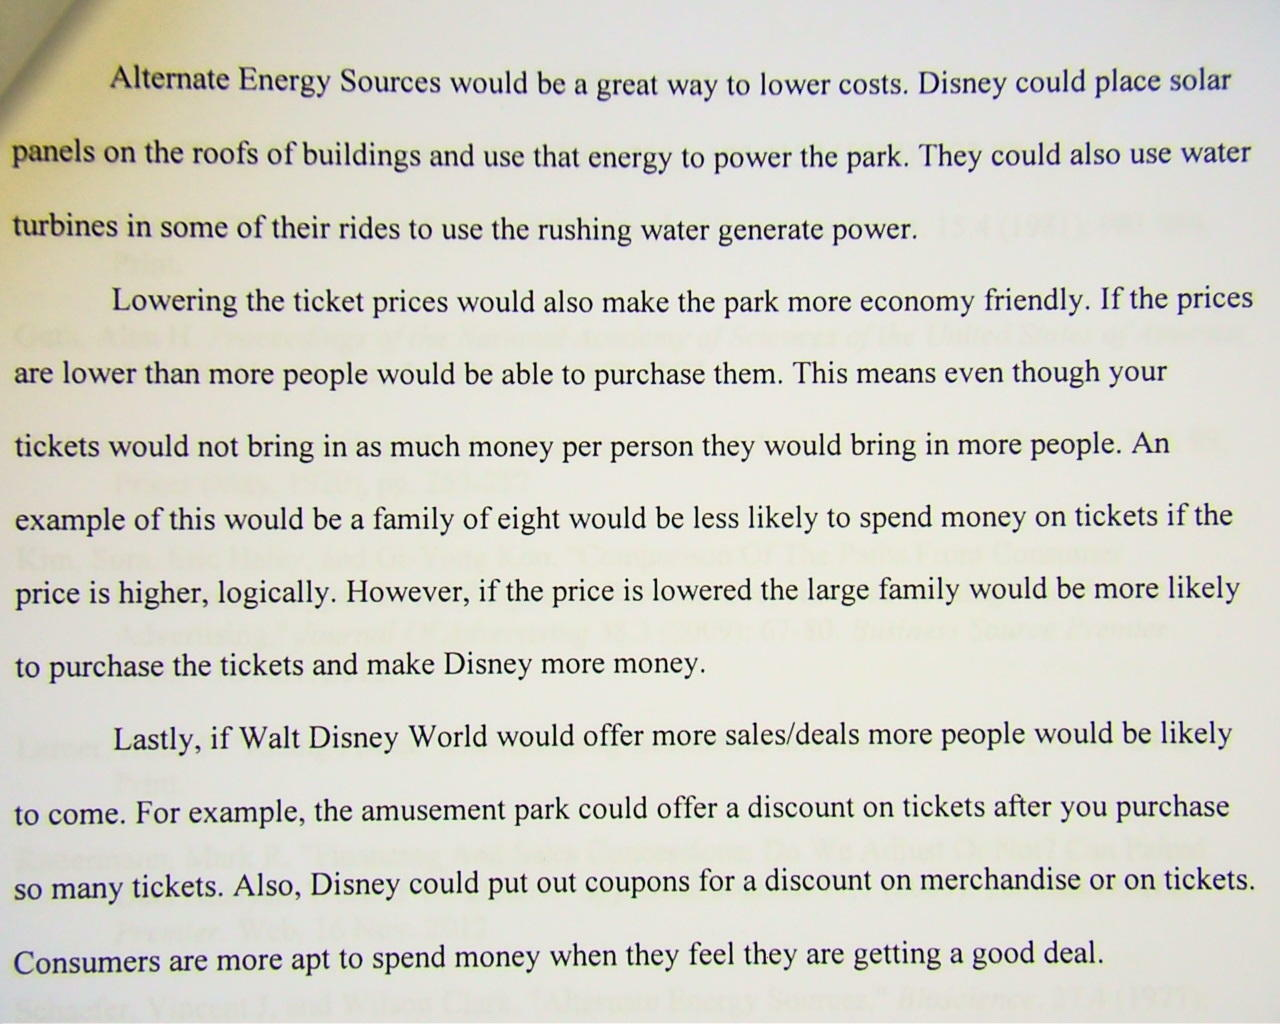 008 Essay Example Student2bsample Proposal2bsupporting2bideas Writing Top A Satirical Examples Of Satire Topics To Write On Sample Essays Full